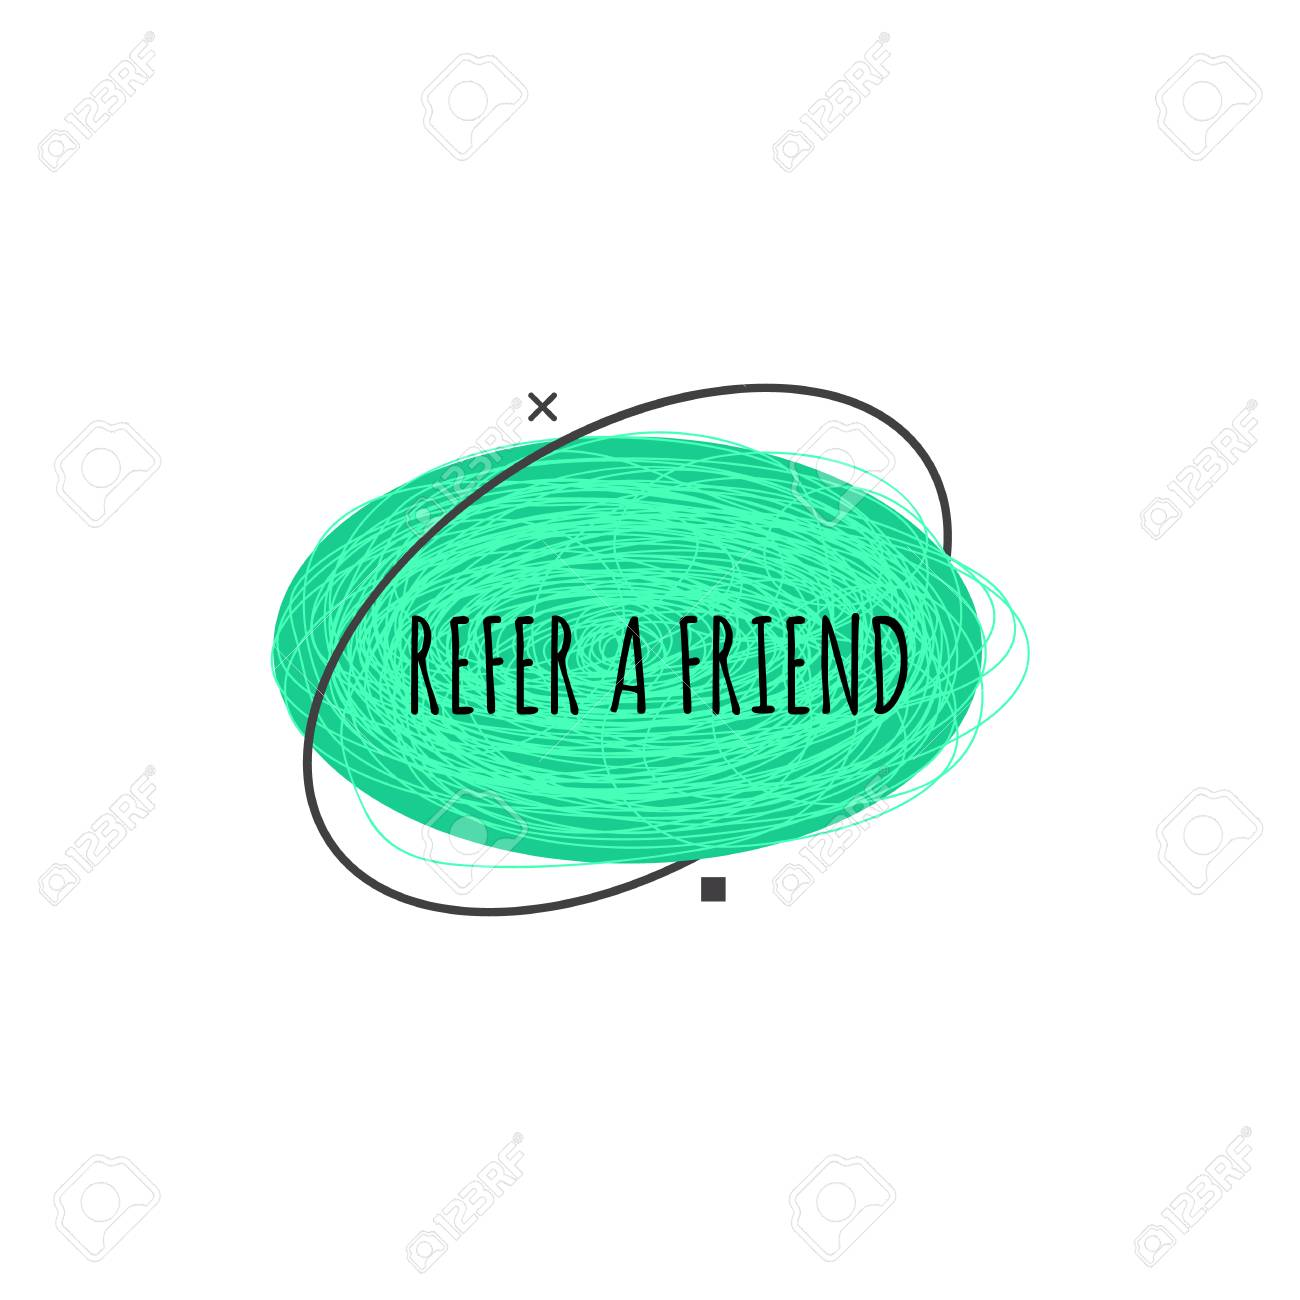 Refer a friend trendy geometric badge in flat or sketch style, vector illustration isolated on white background. Green advertisement sign of referral program from ellipse shapes - 123465950